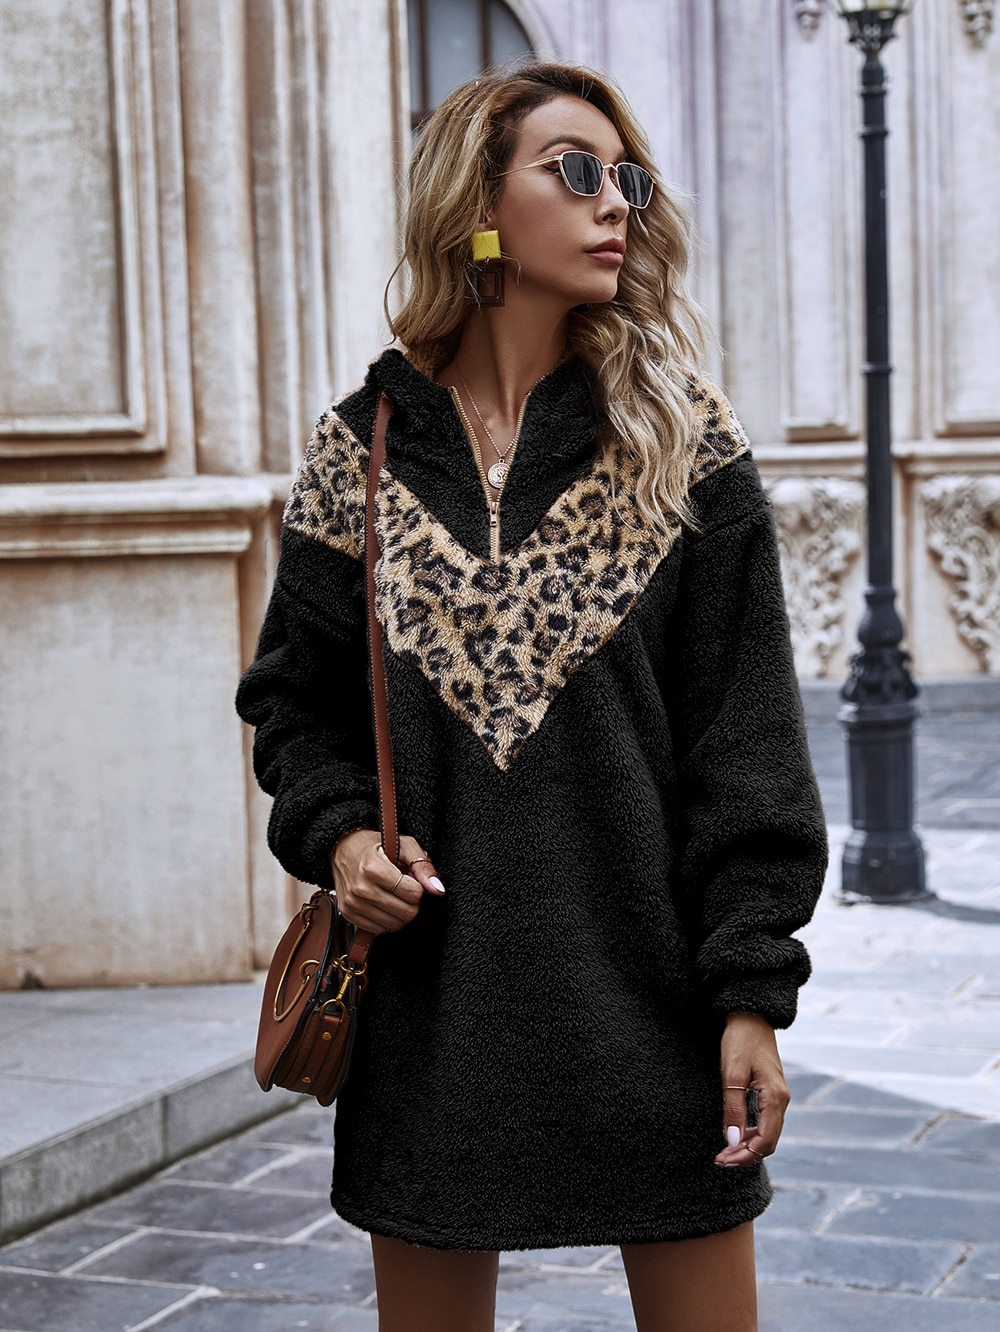 Women's solid color plush hooded autumn and winter dresses, dresses for women 2021, Women clothes, Party dresses, traf